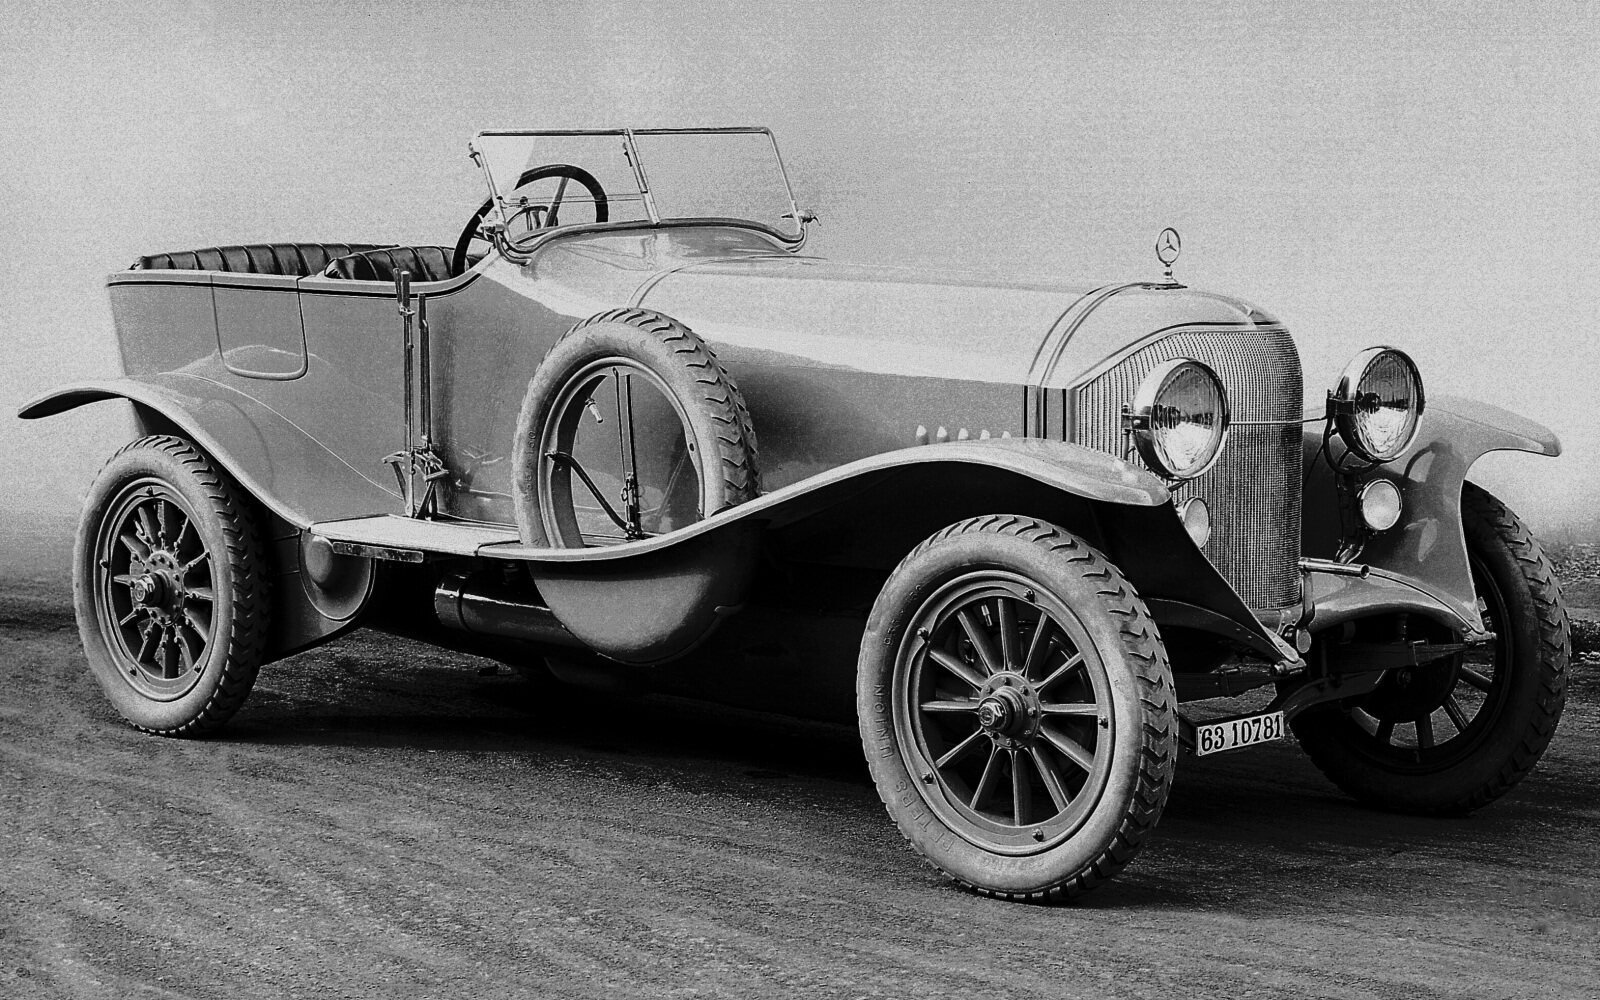 PKW2161 Mercedes experimental cars and single-unit production, 1913 - 1920